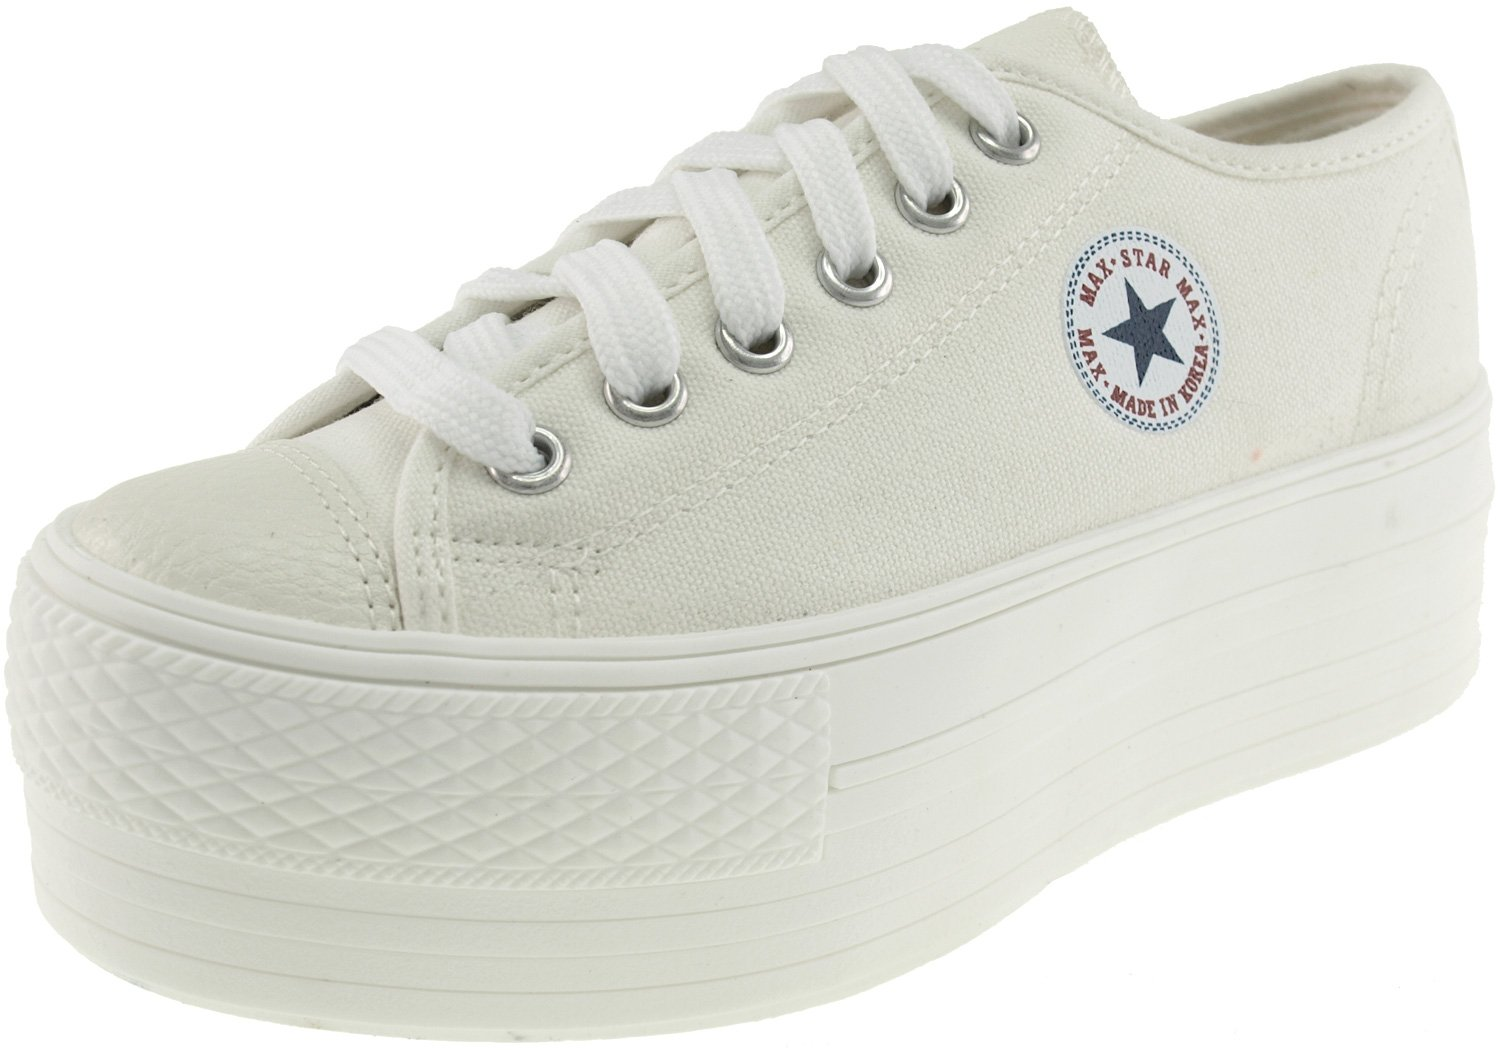 Maxstar Women's C50 6 Holes Platform Canvas Low Top All Sneakers White 7 B(M) US